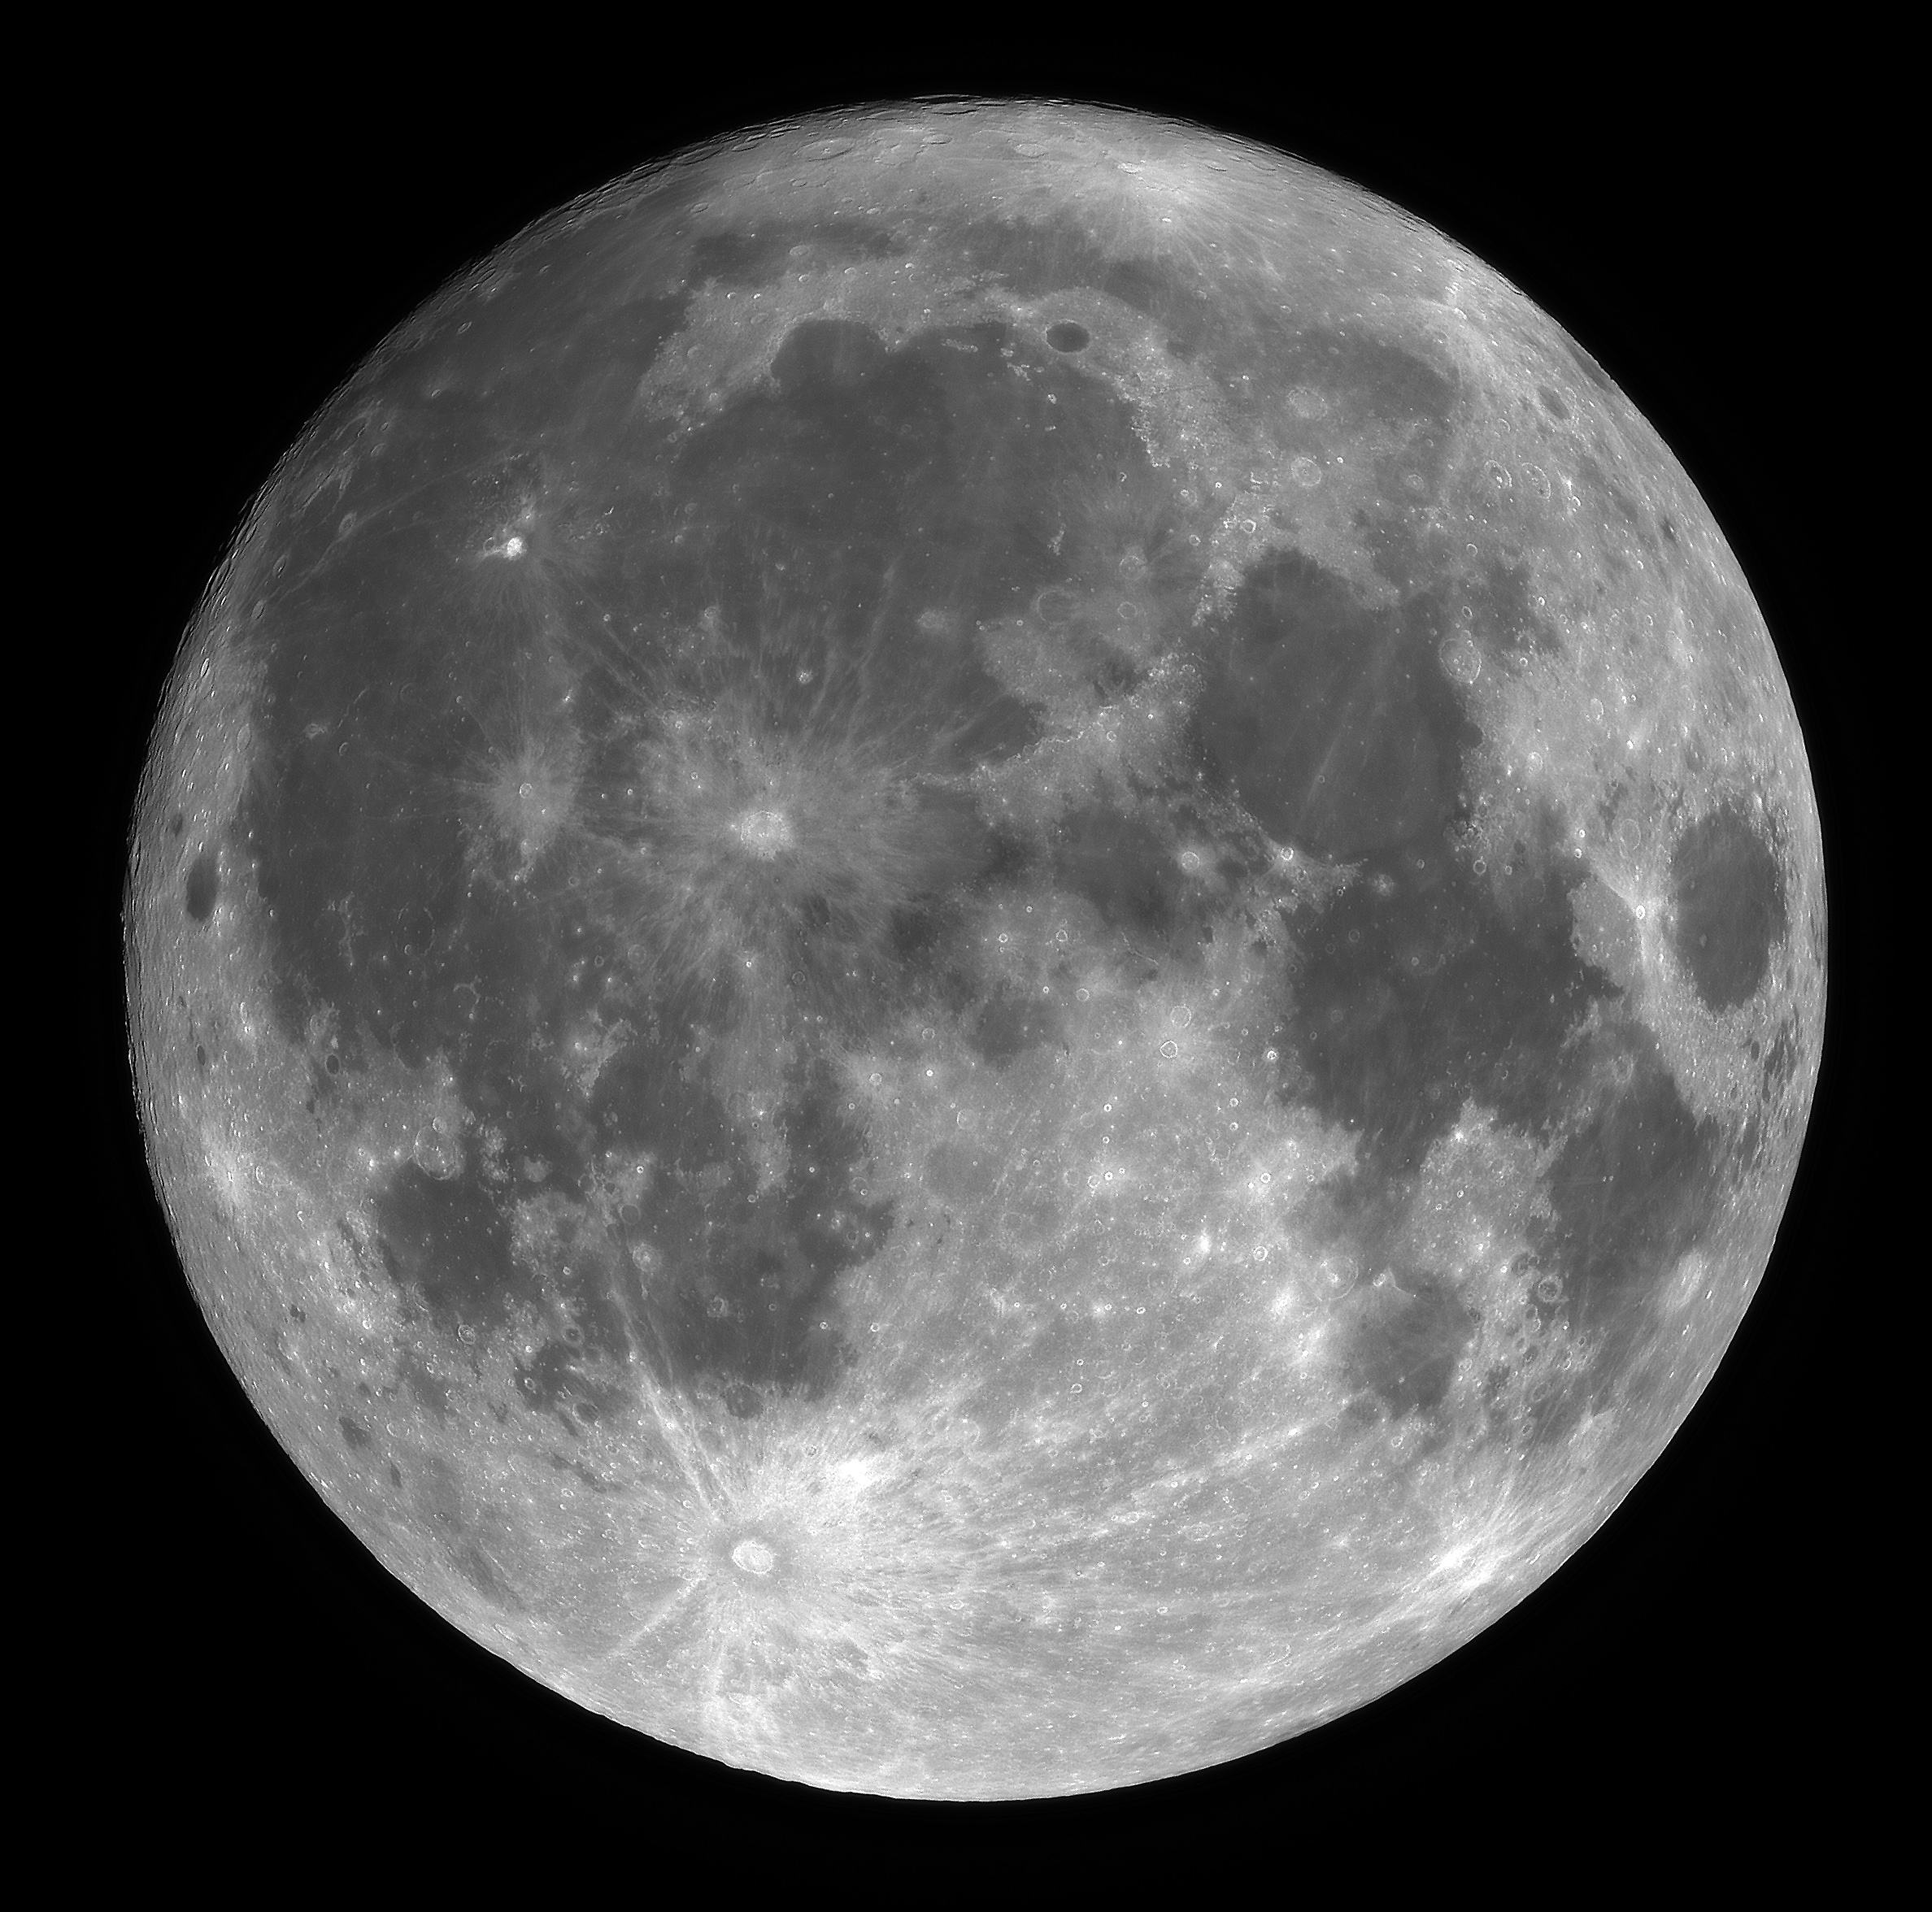 2018-09-24-1515_2-semi-apo-Moon_AS_f1000_g4_ap245_ps.jpg